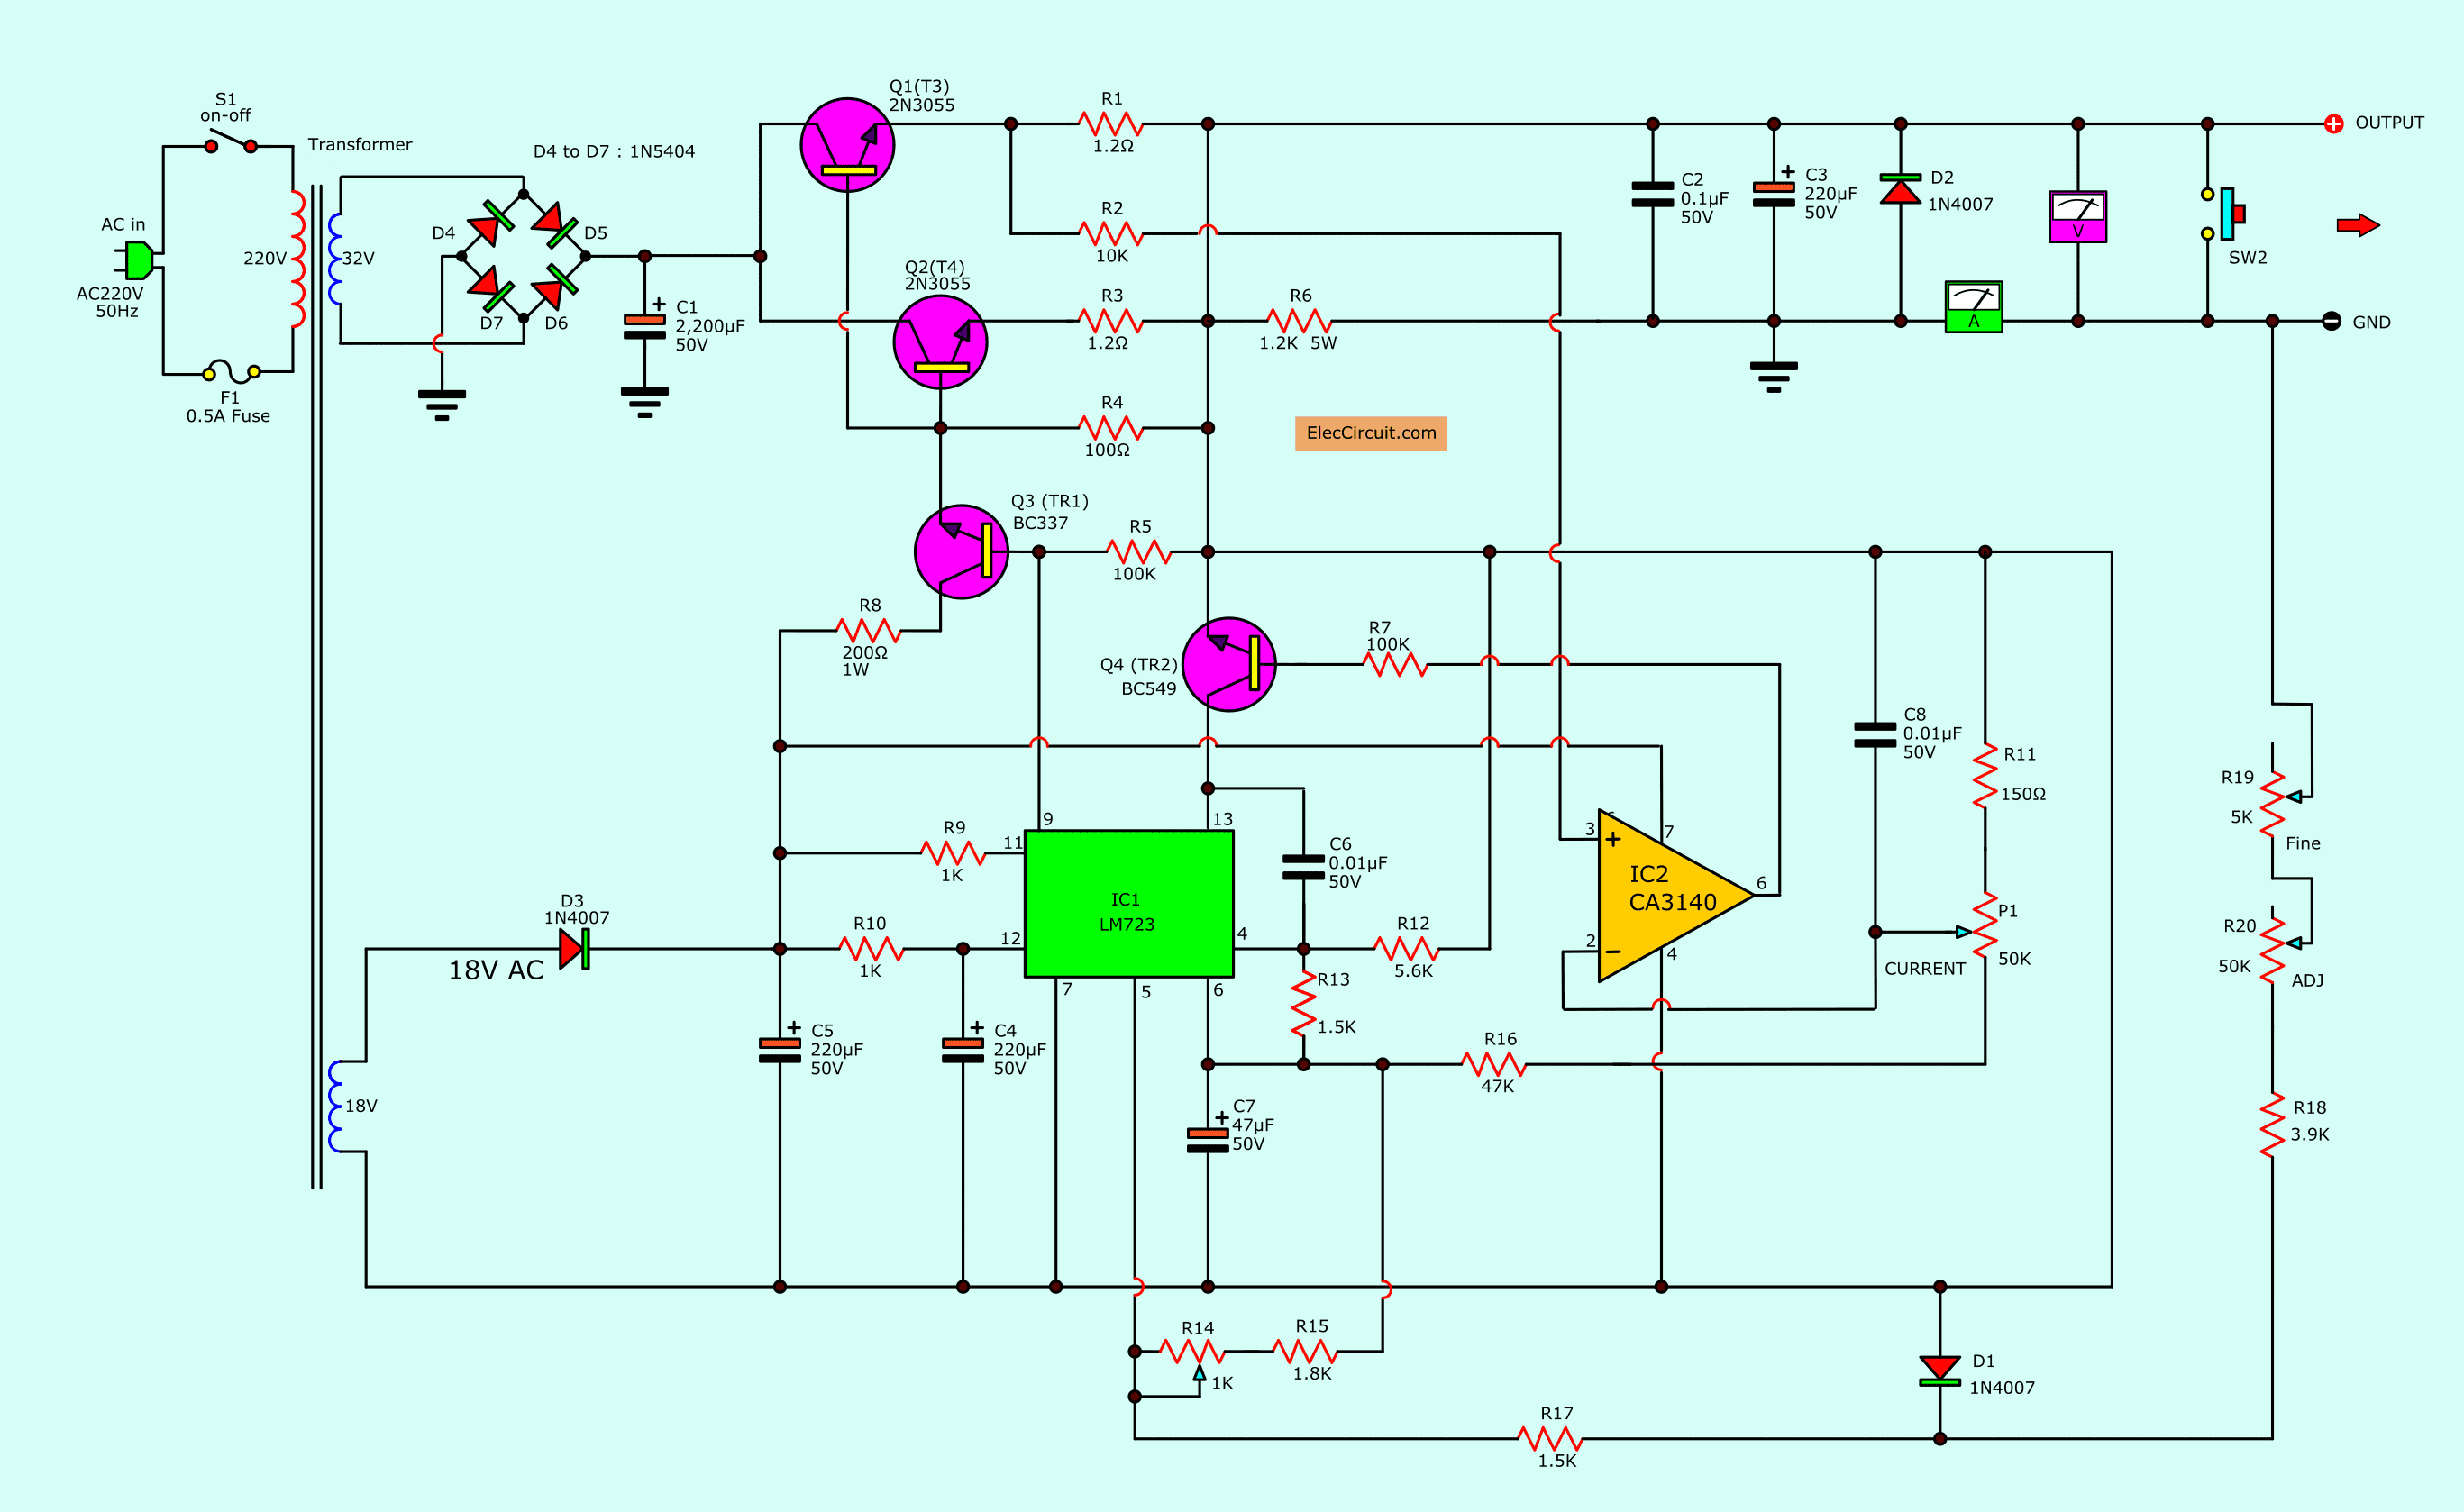 power supply wiring diagram tw 5824  lm723 variable power supply circuit design electronic power supply wiring diagram pc lm723 variable power supply circuit